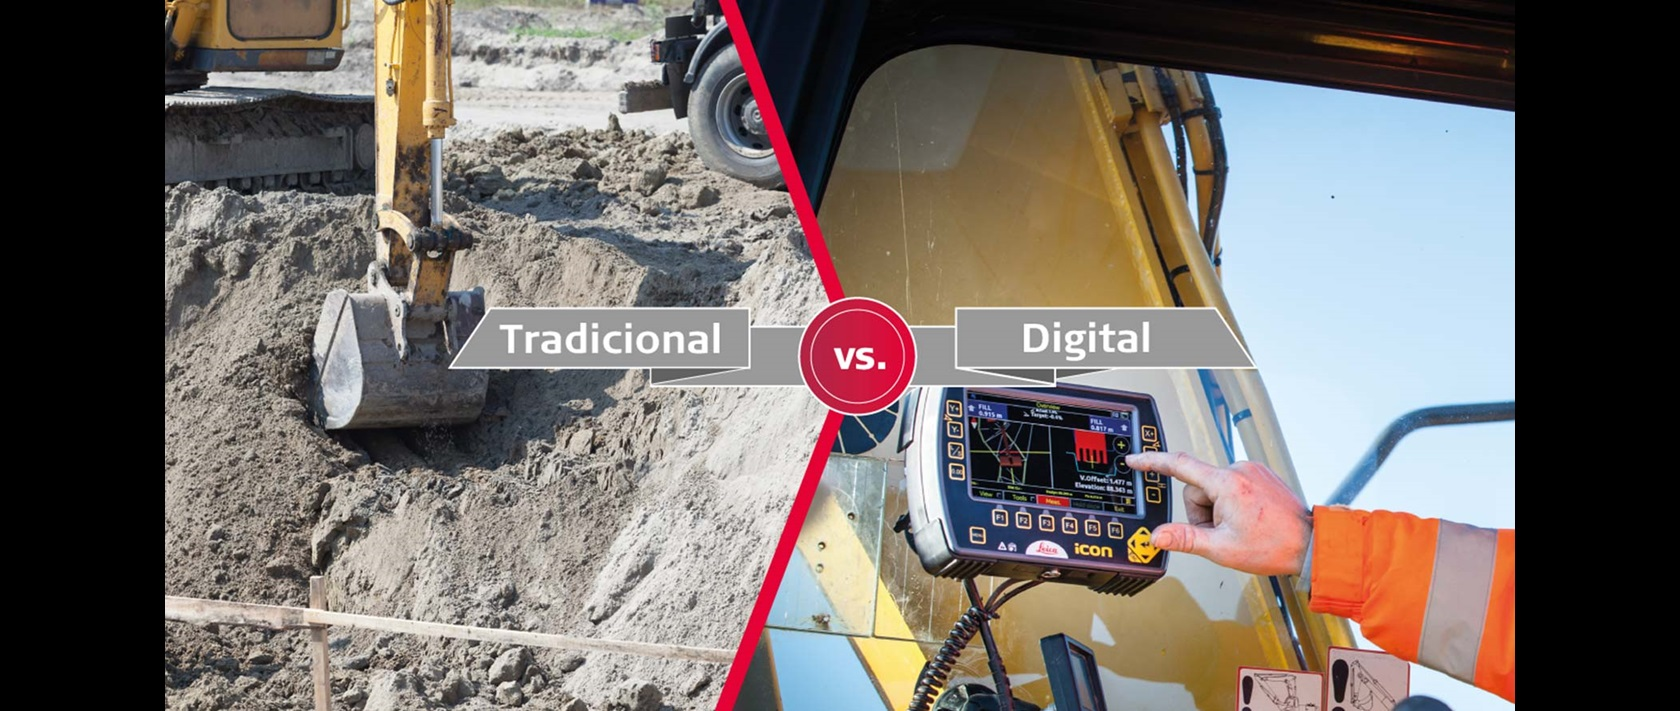 Digital Construction Traditional vs Digital